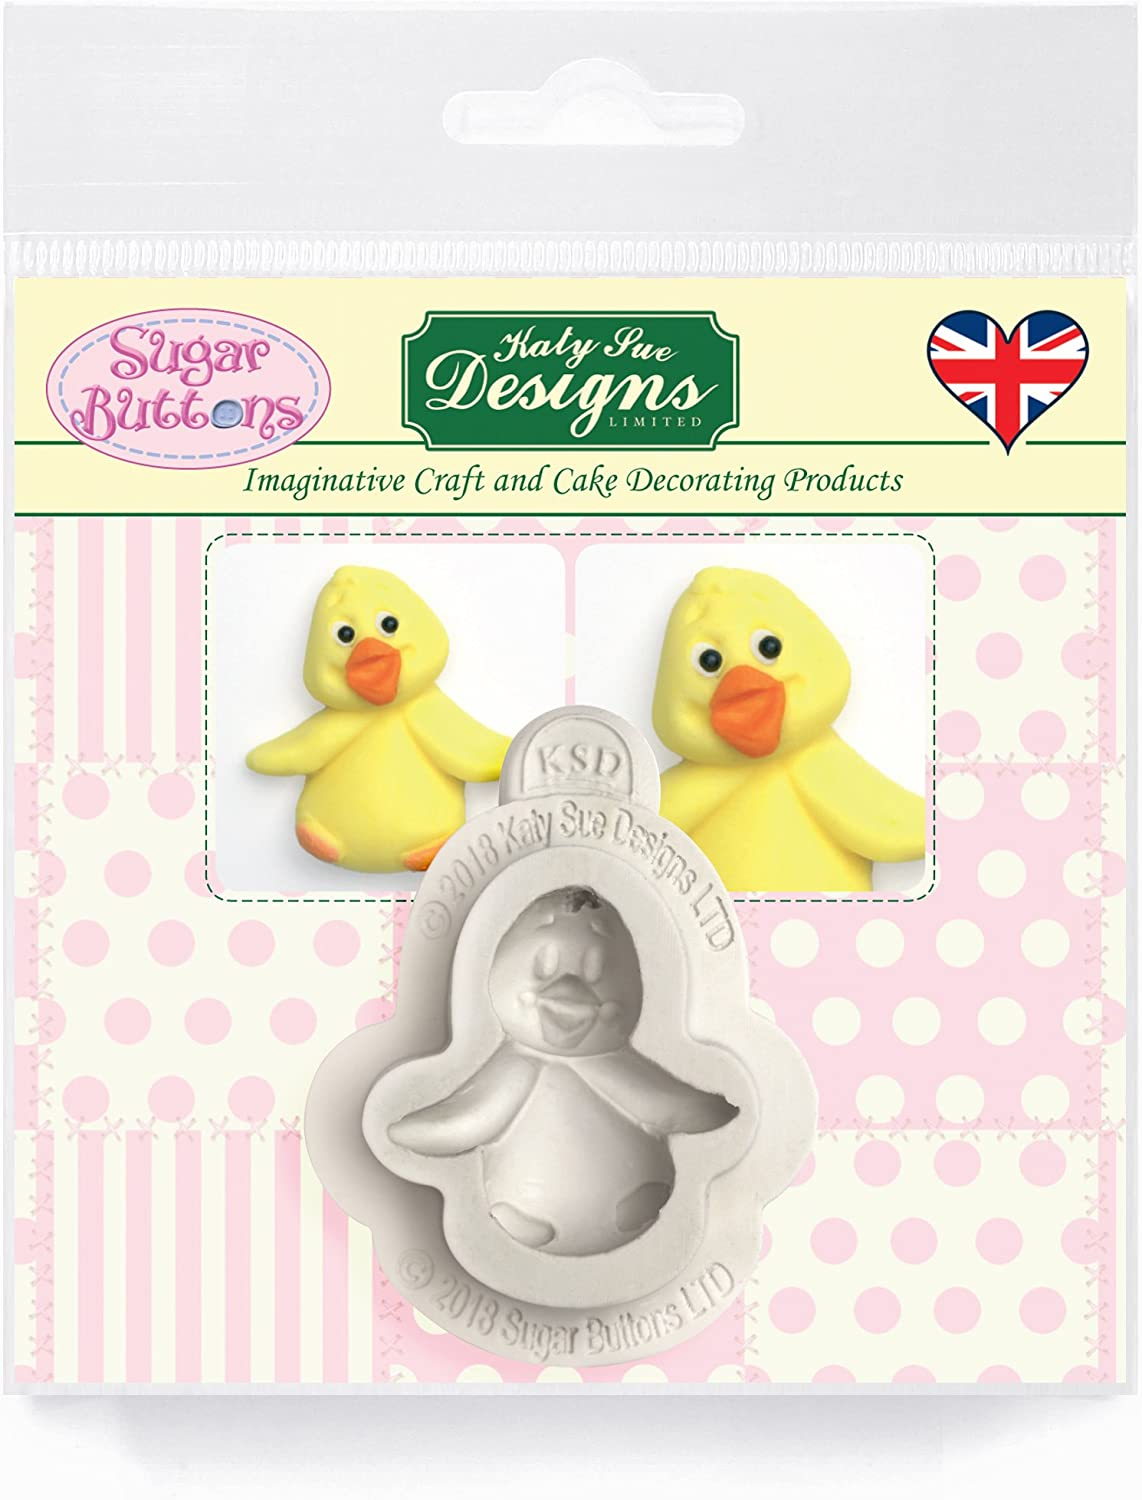 Baby Chick Silicone Mold for Cake Decorating, Crafts, Cupcakes, Sugarcraft, Candies, Card Making and Clay, Food Safe Approved, Made in The UK, Sugar Buttons by Kathryn Sturrock